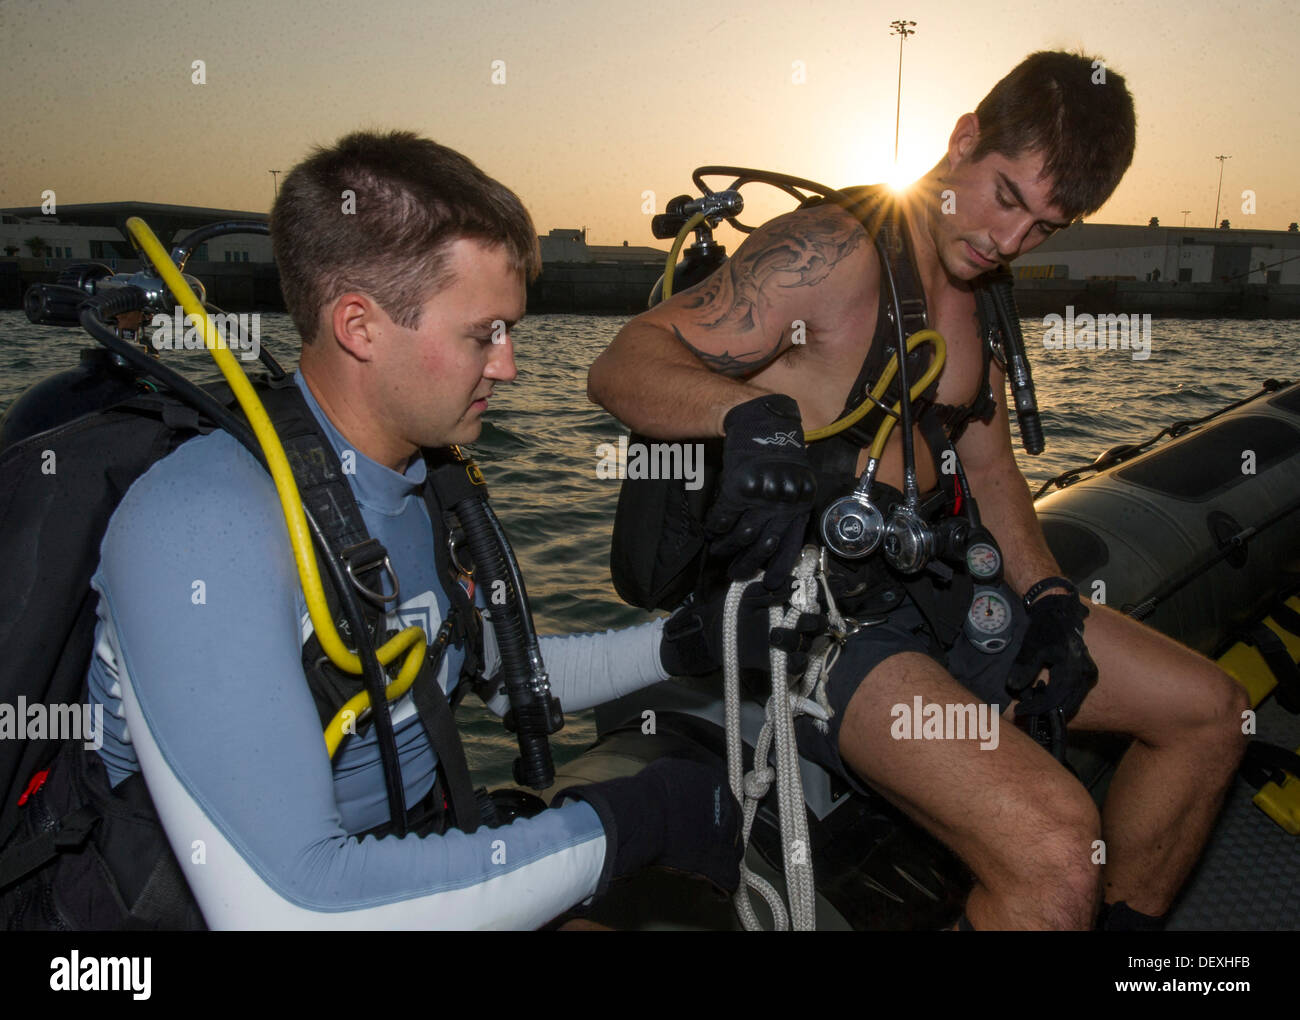 Navy Diver 2nd Class Trent Gobble and Mass Communication Specialist 3rd Class Wyatt Huggett, both assigned to Commander, Task Group (CTG) 56.1, prepare their gear for an early morning anti-terrorism force protection inspection dive. CTG 56.1 conducts mari - Stock Image